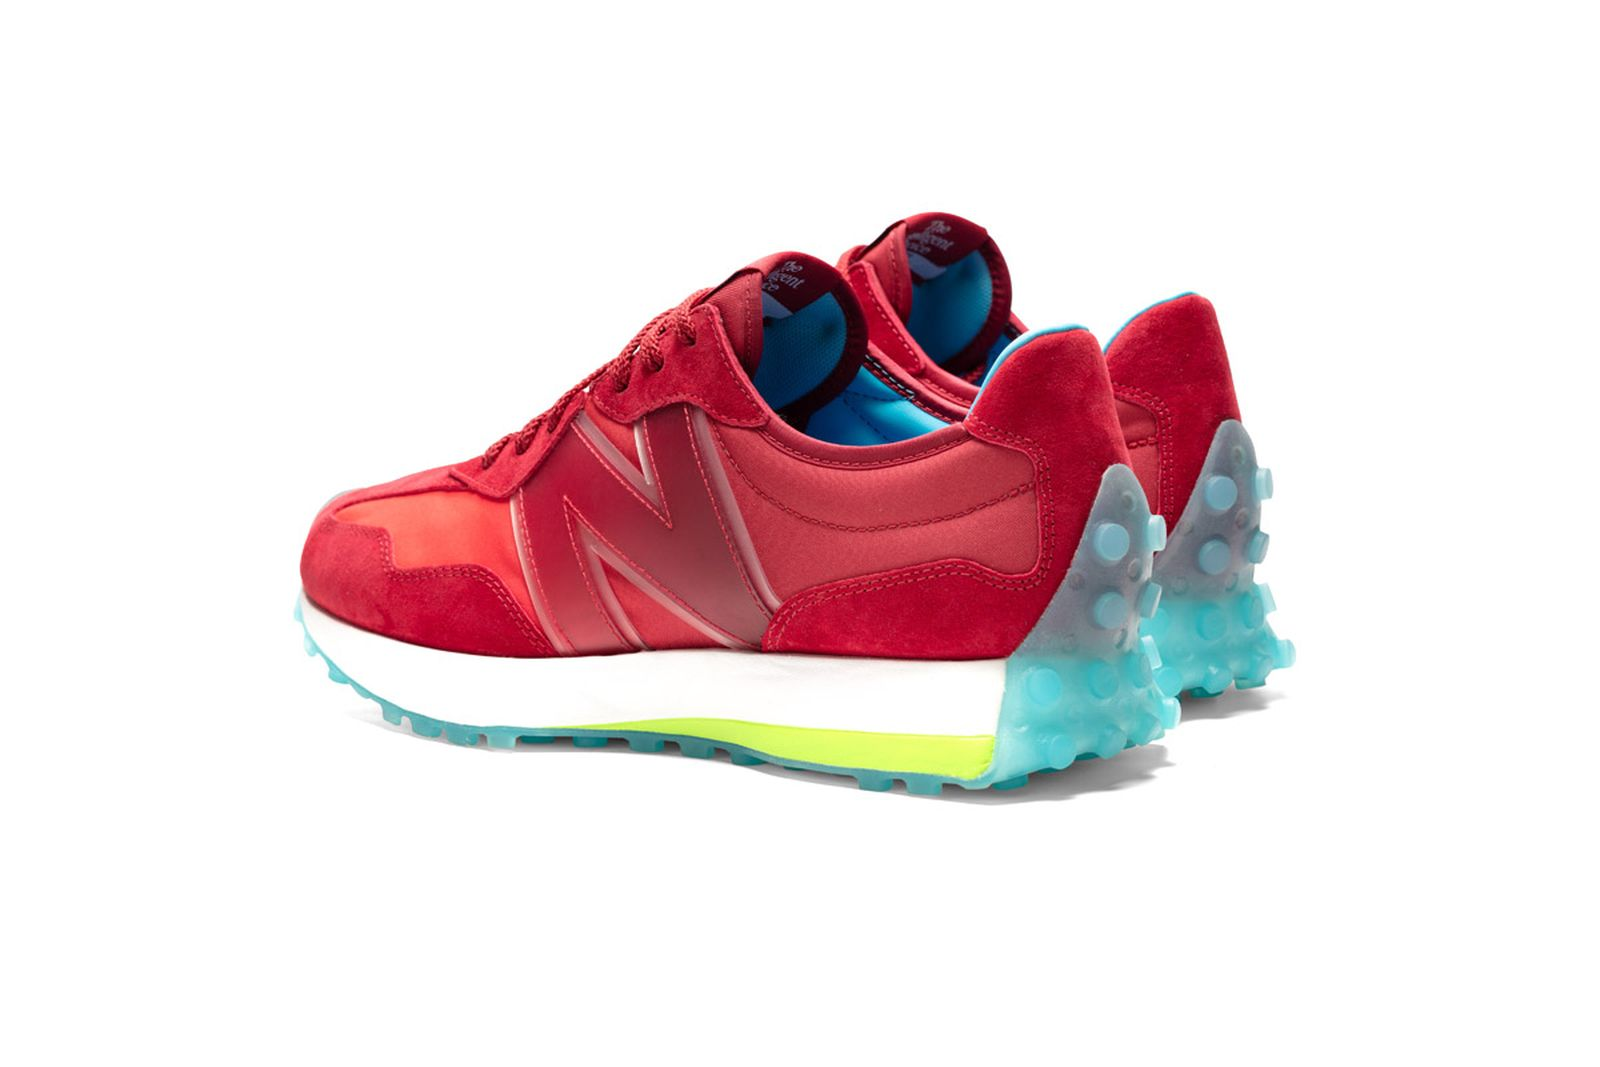 6new-balance-concepts-cranberry-product-shots